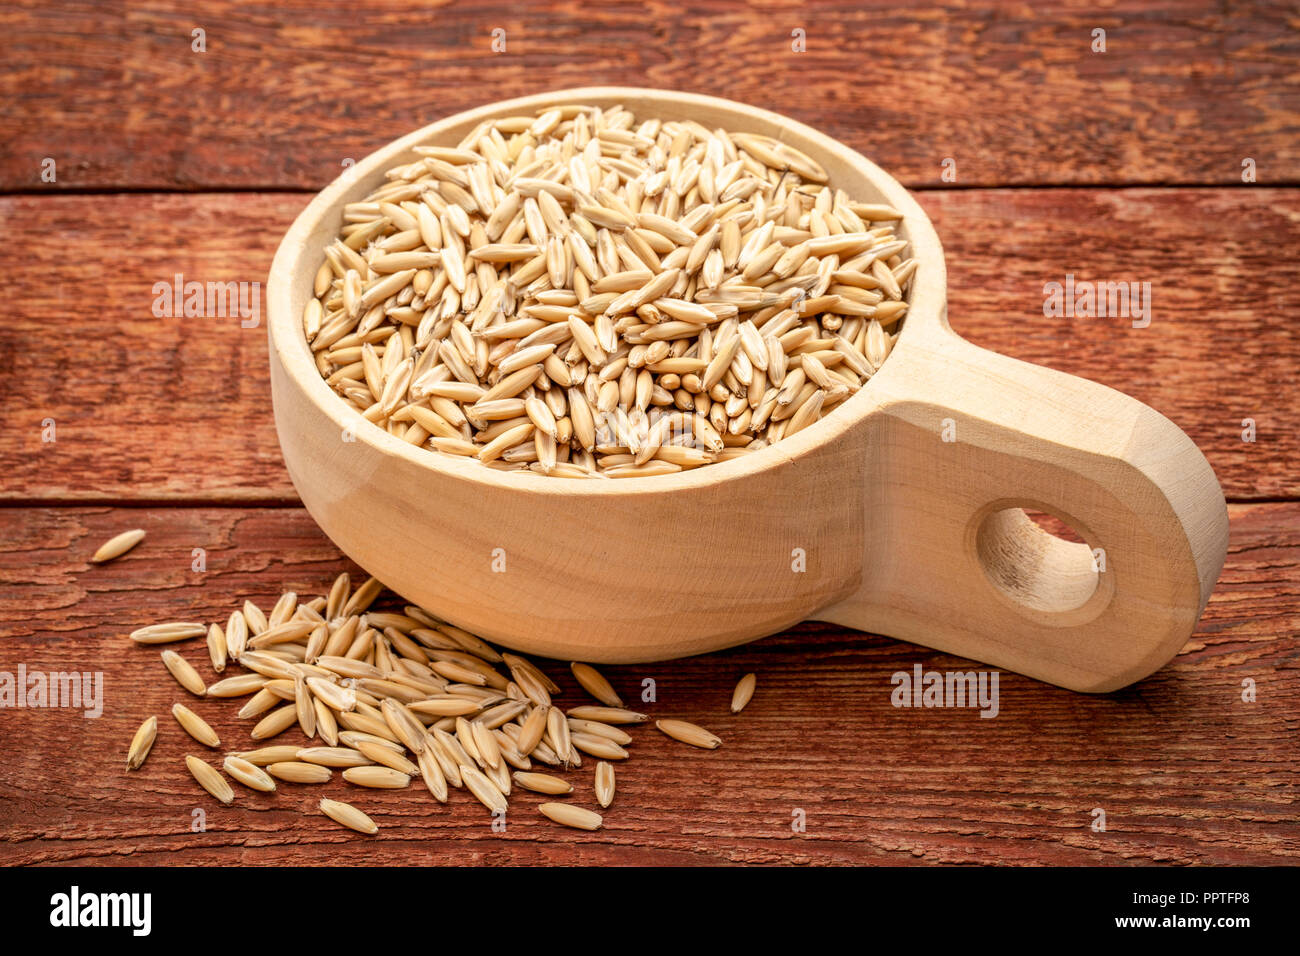 organic, whole oat groats in a wooden scoop against red barn wood